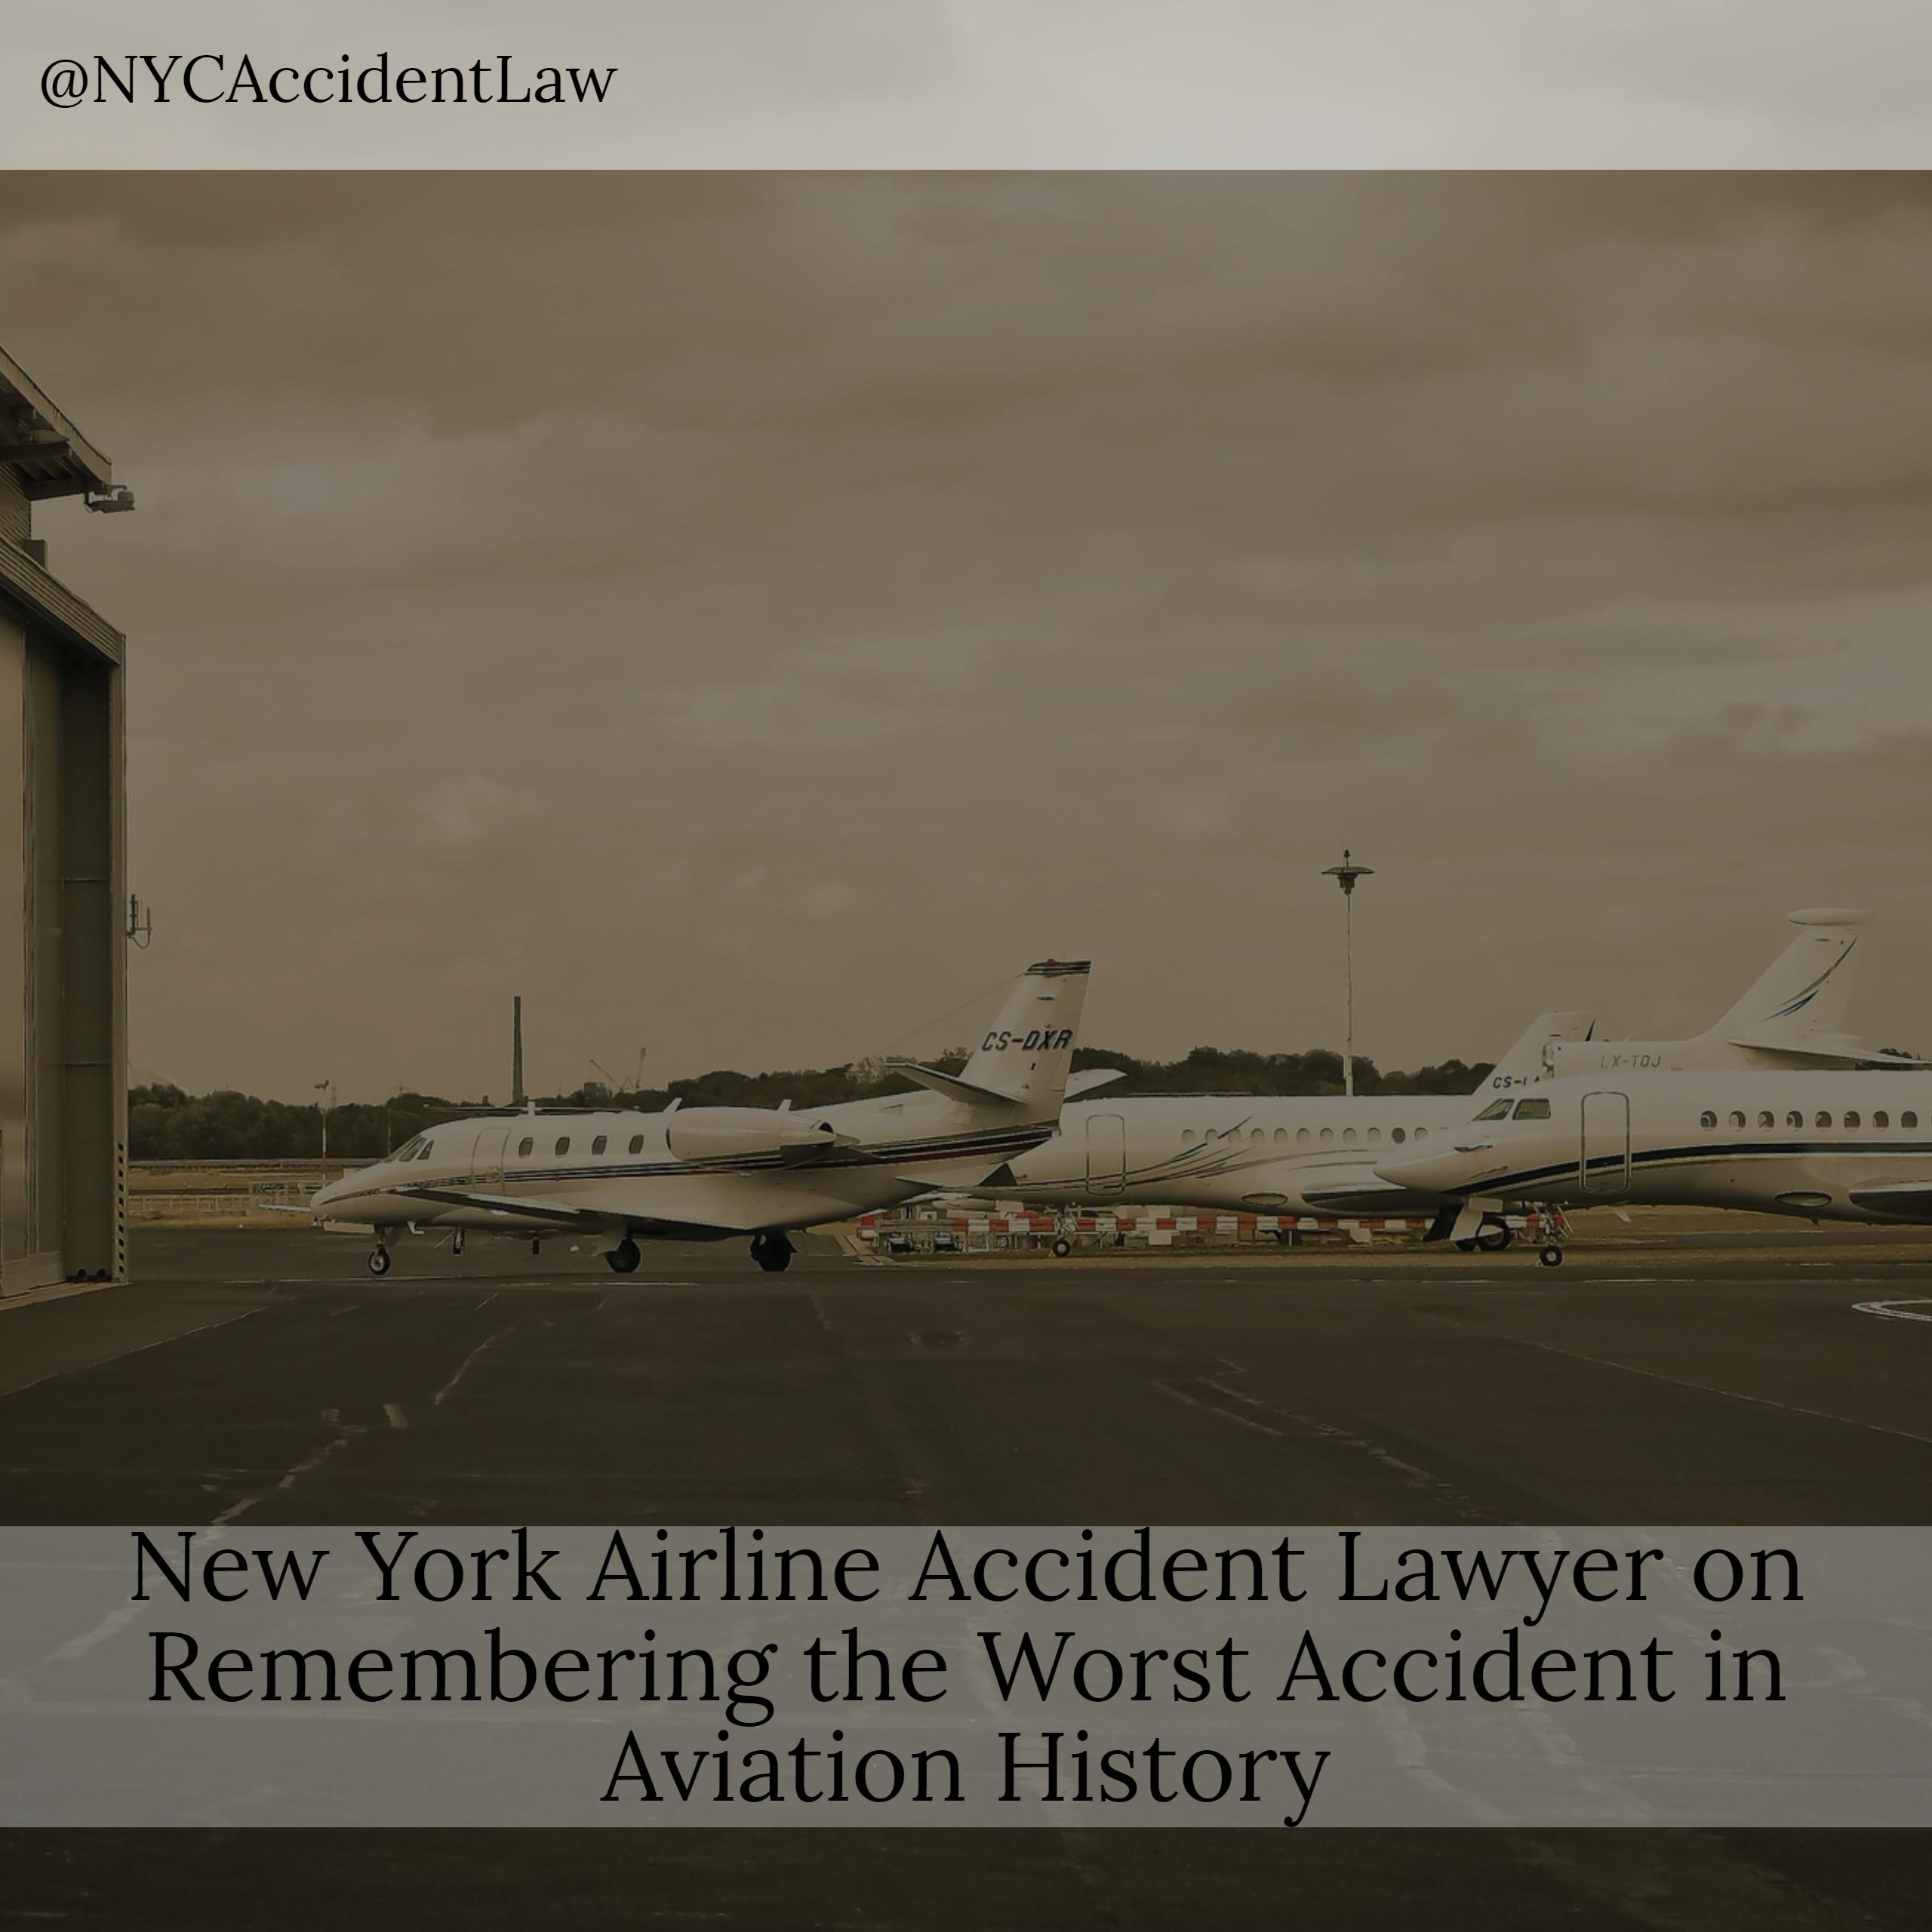 New York Airline Accident Lawyer on Remembering the Worst Accident in Aviation History